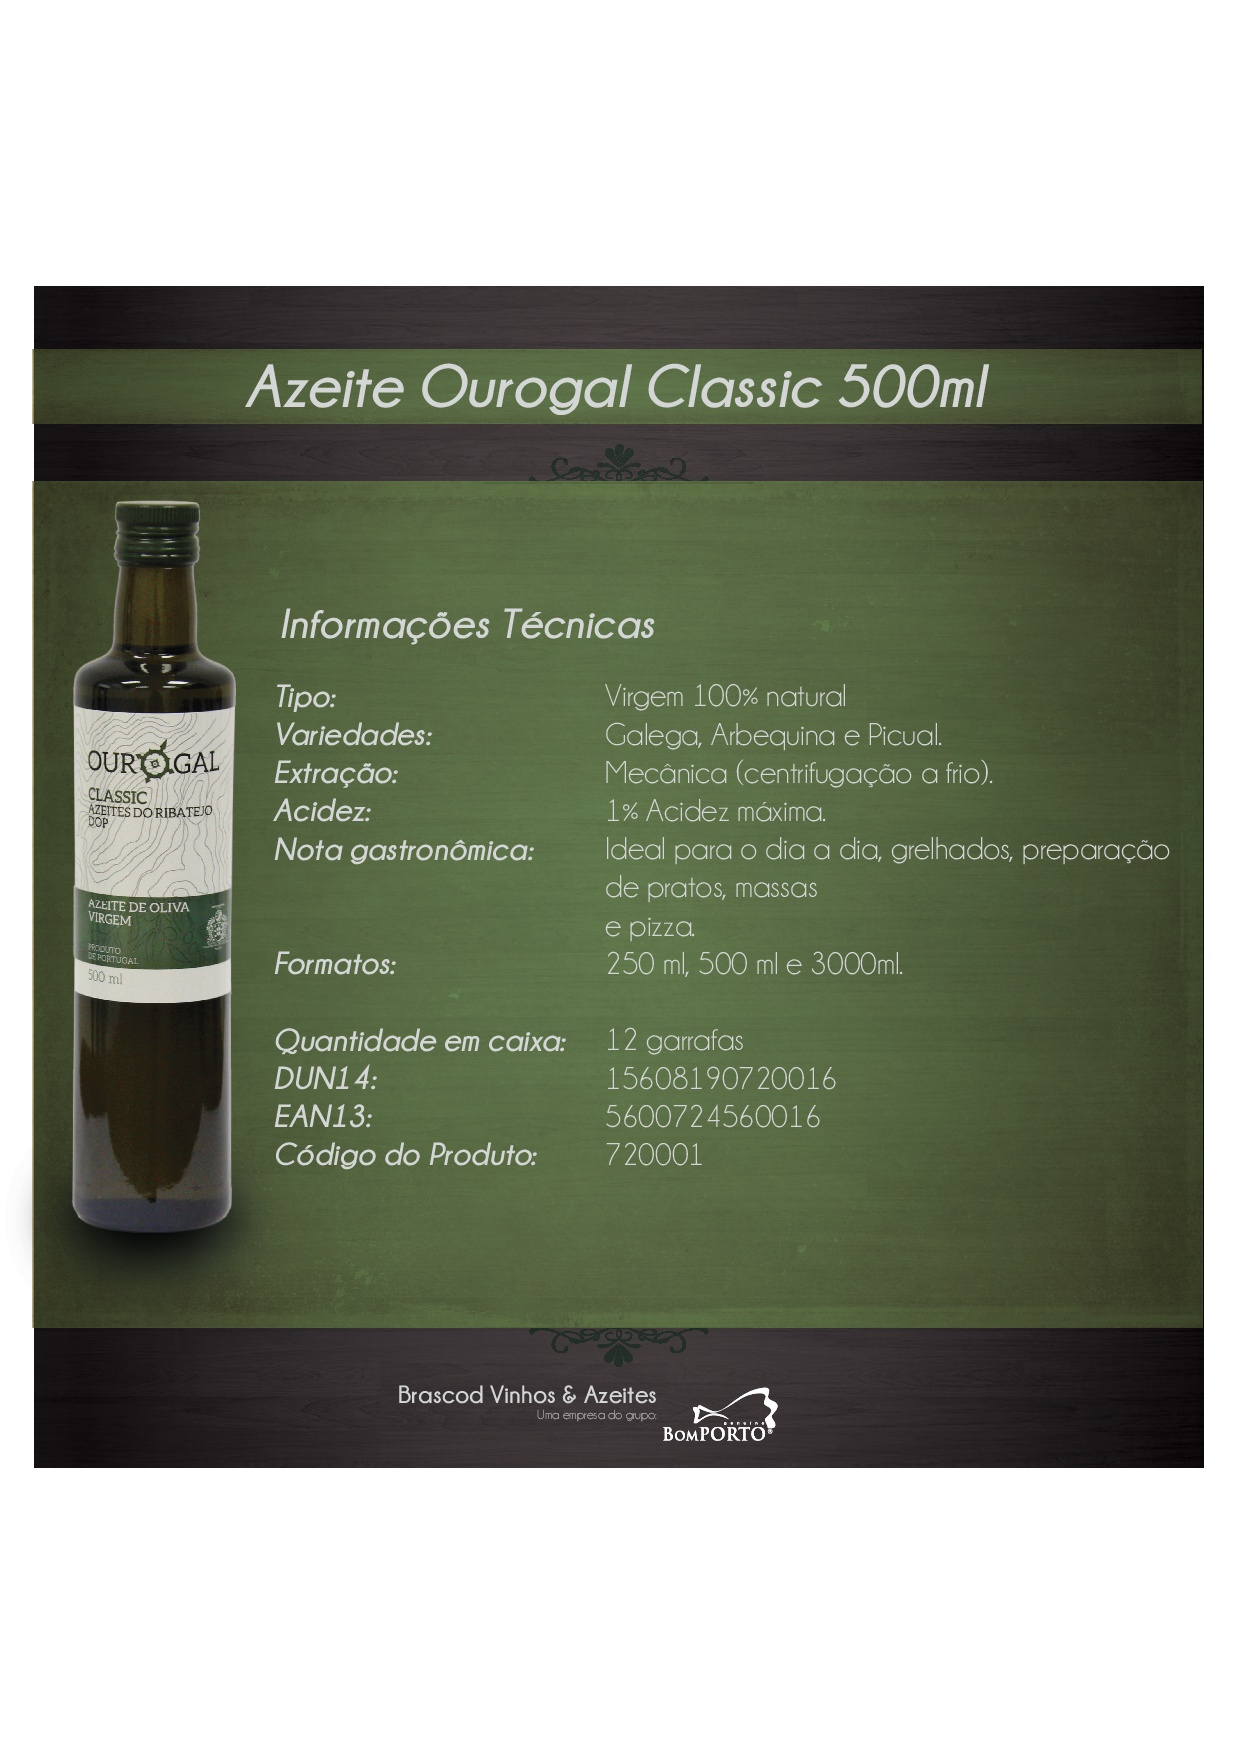 AZEITE OUROGAL CLASSIC 500ML